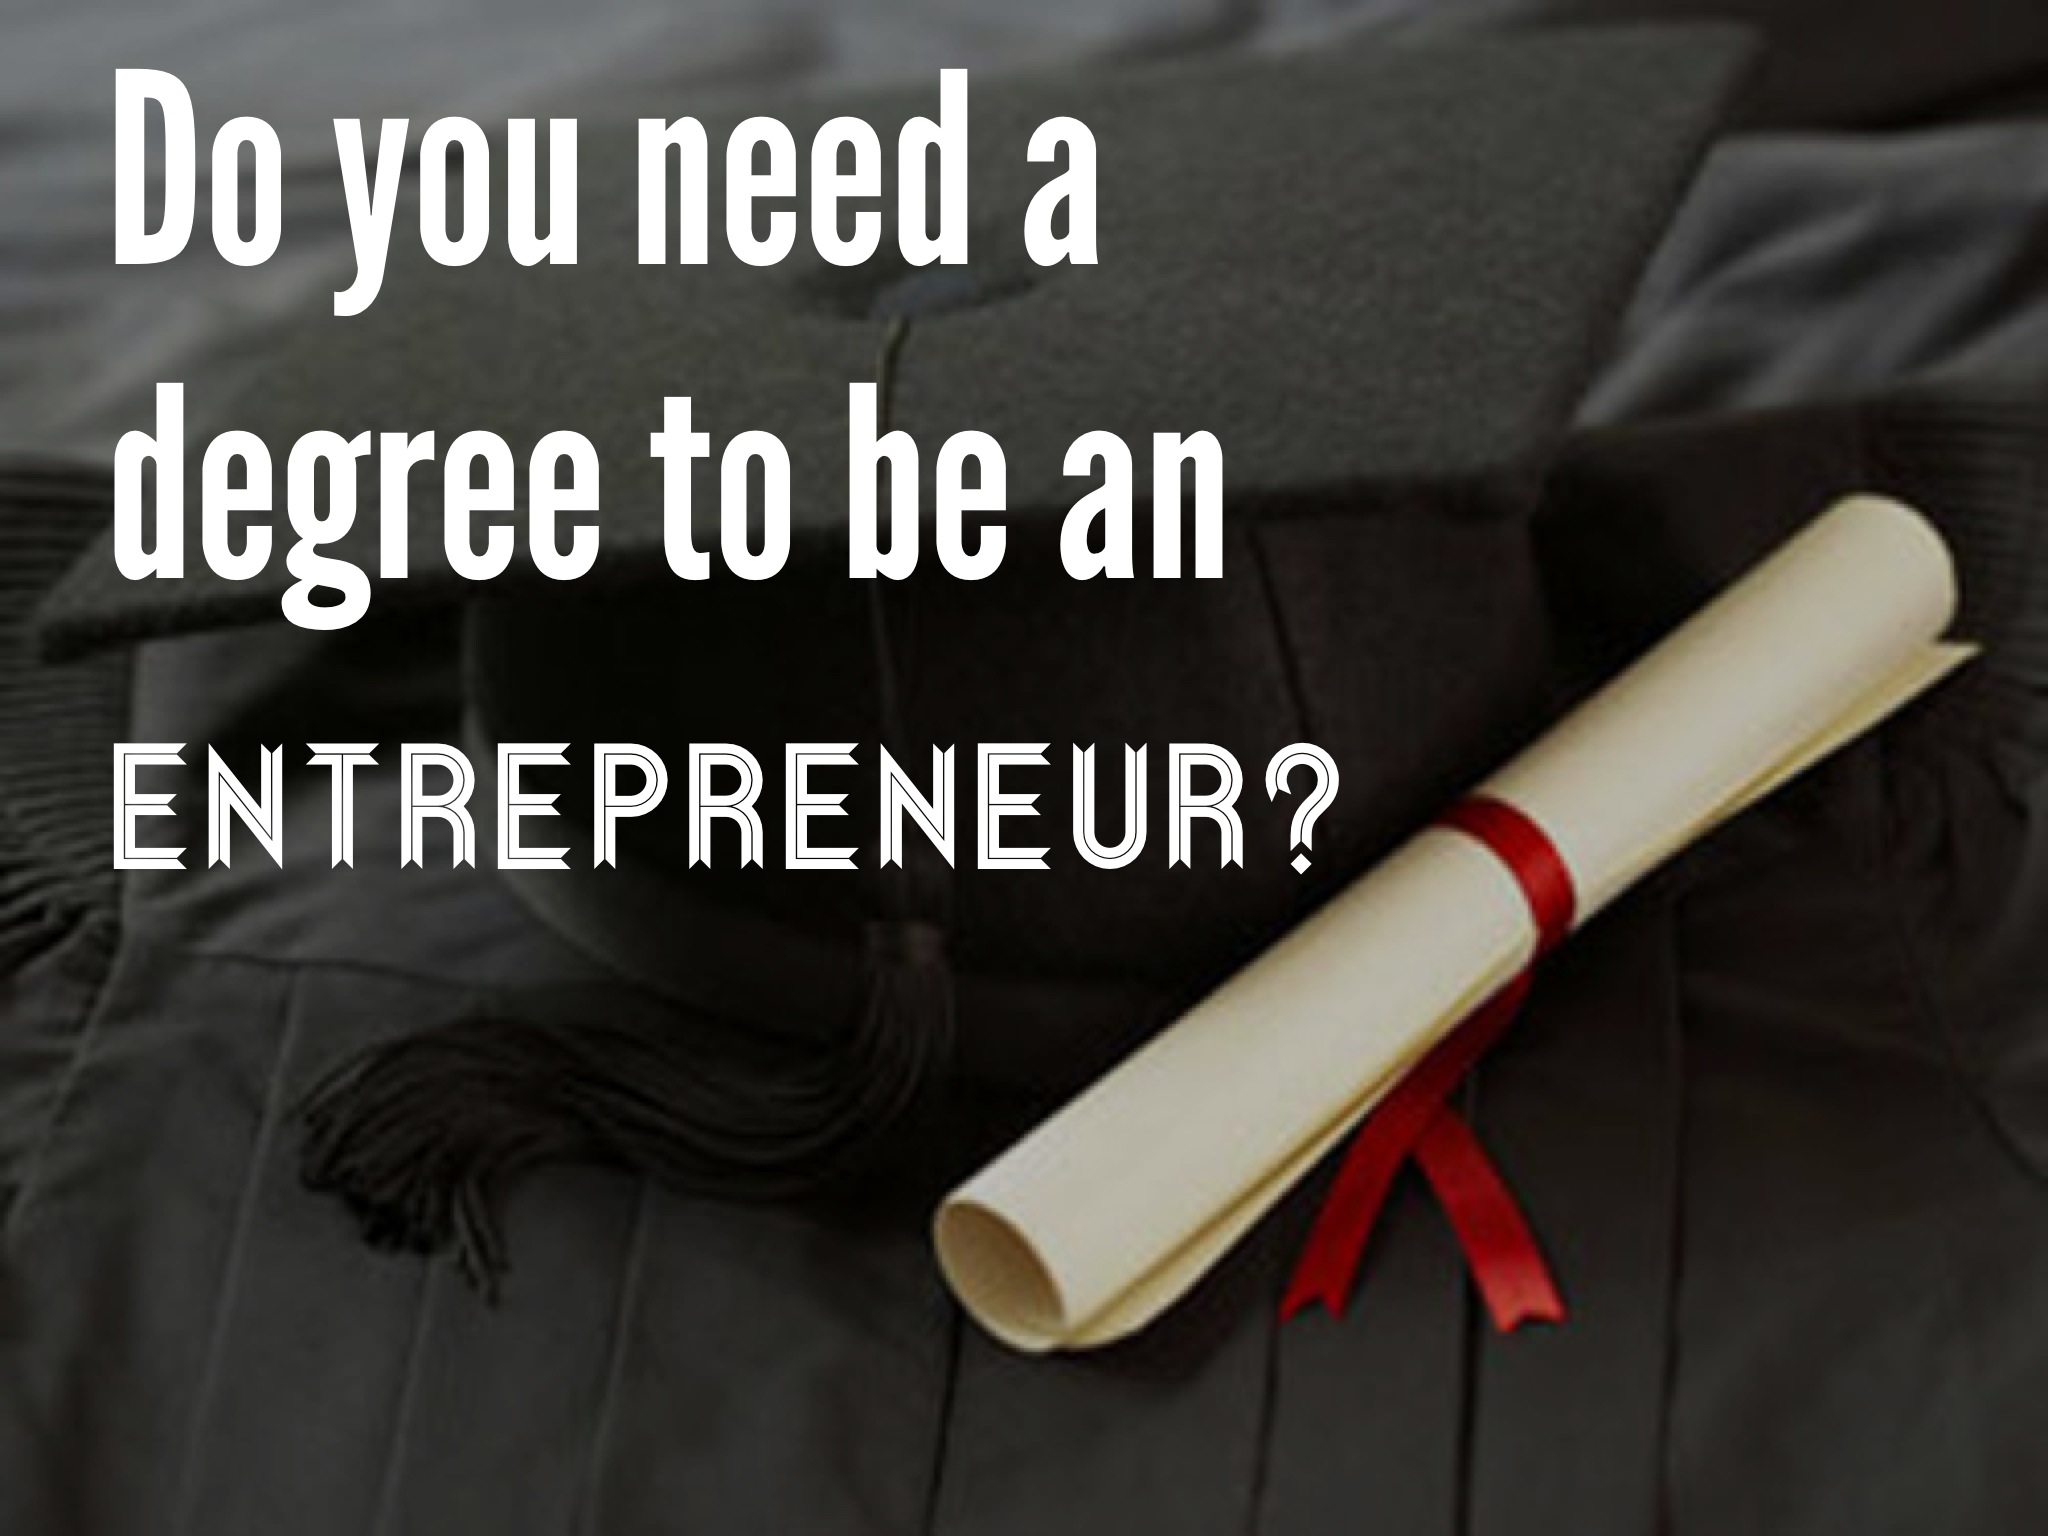 Do you need a degree to be an entrepreneur